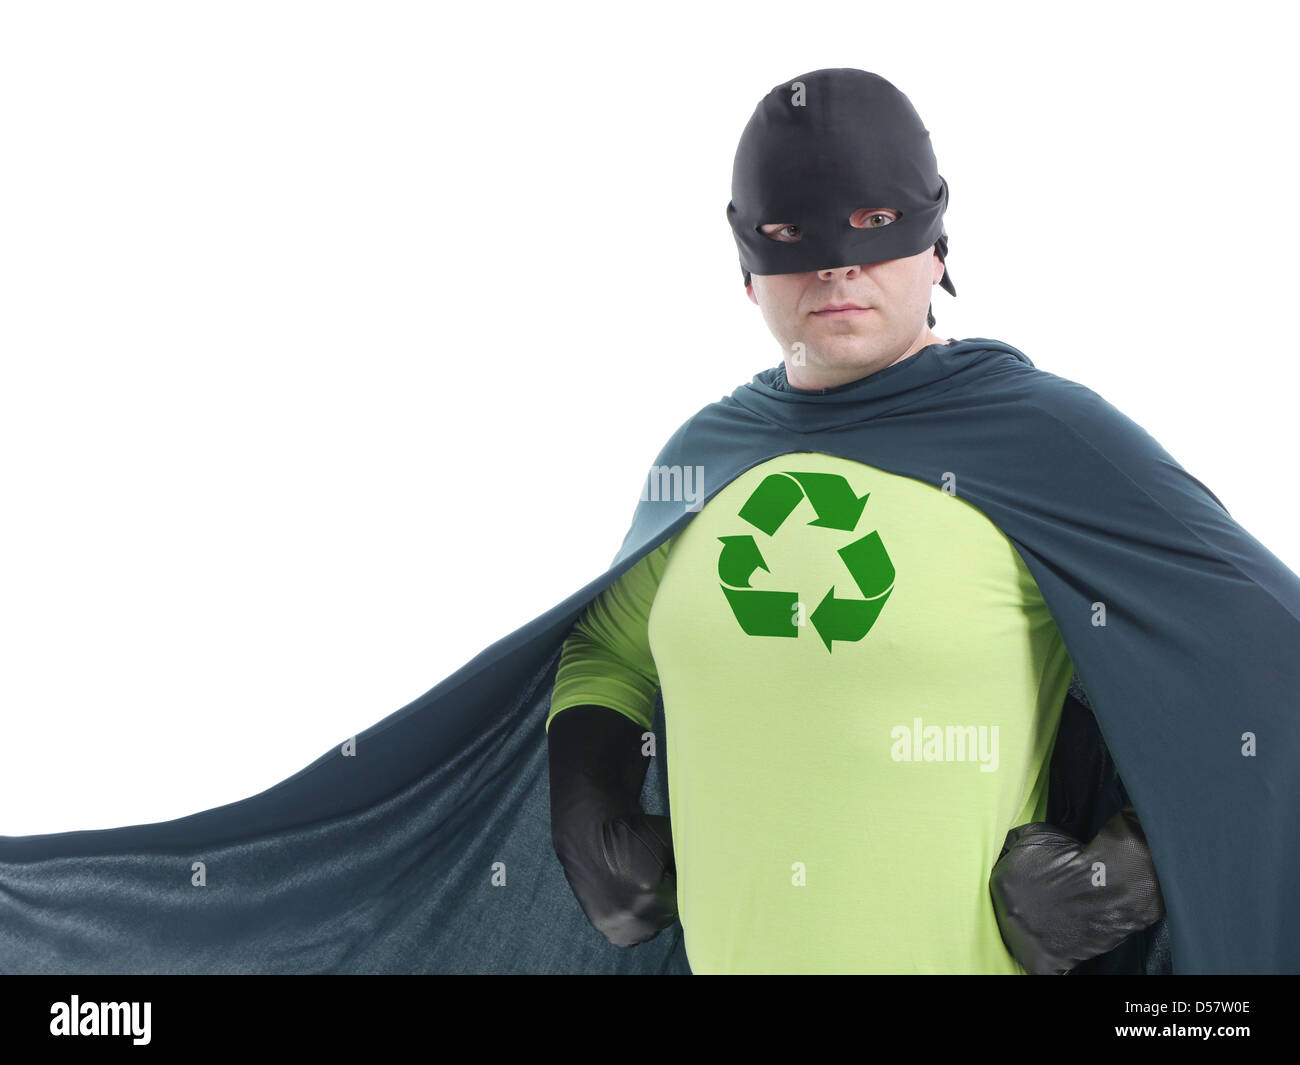 Eco superhero with green recycle arrow symbol on chest posing confidently over white background - recycle concept - Stock Image